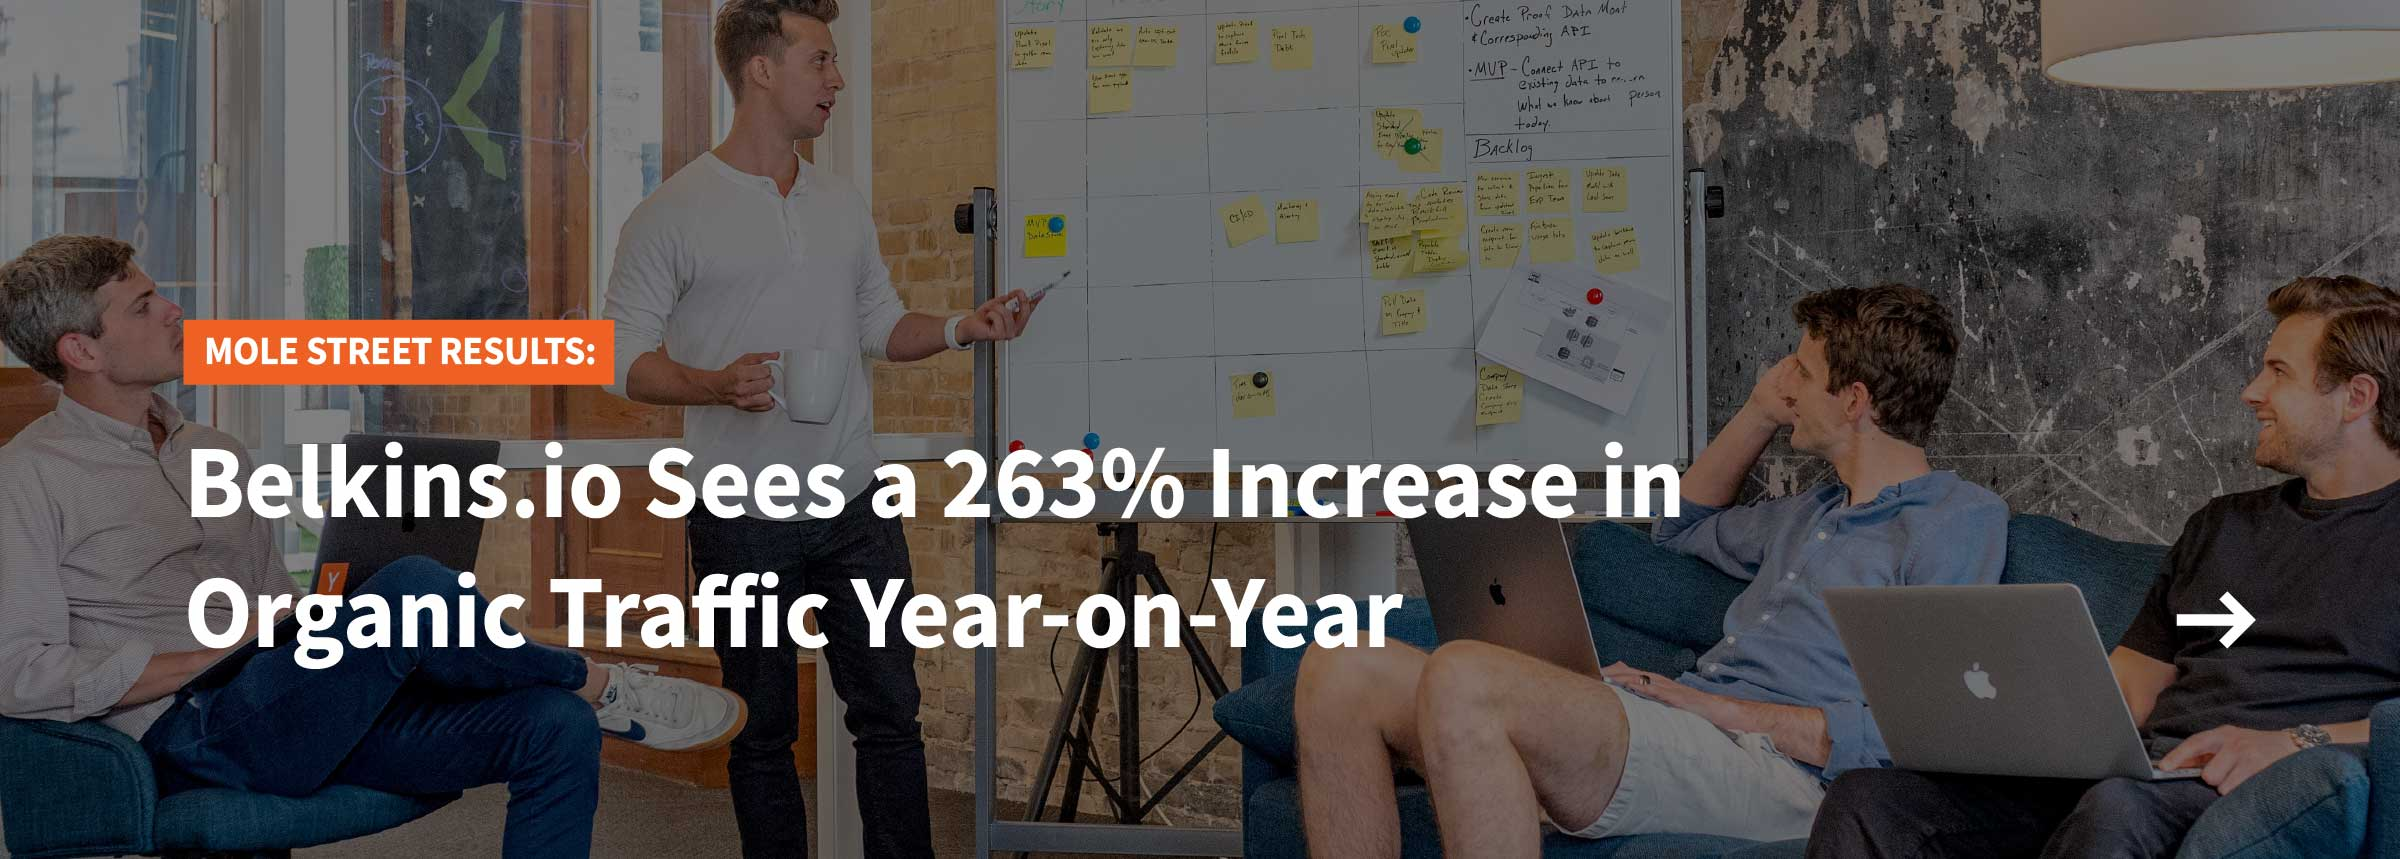 Learn how Mole Street Agency, a Diamond HubSpot Partner, helped a company realize a 263% increase in organic traffic year over year.